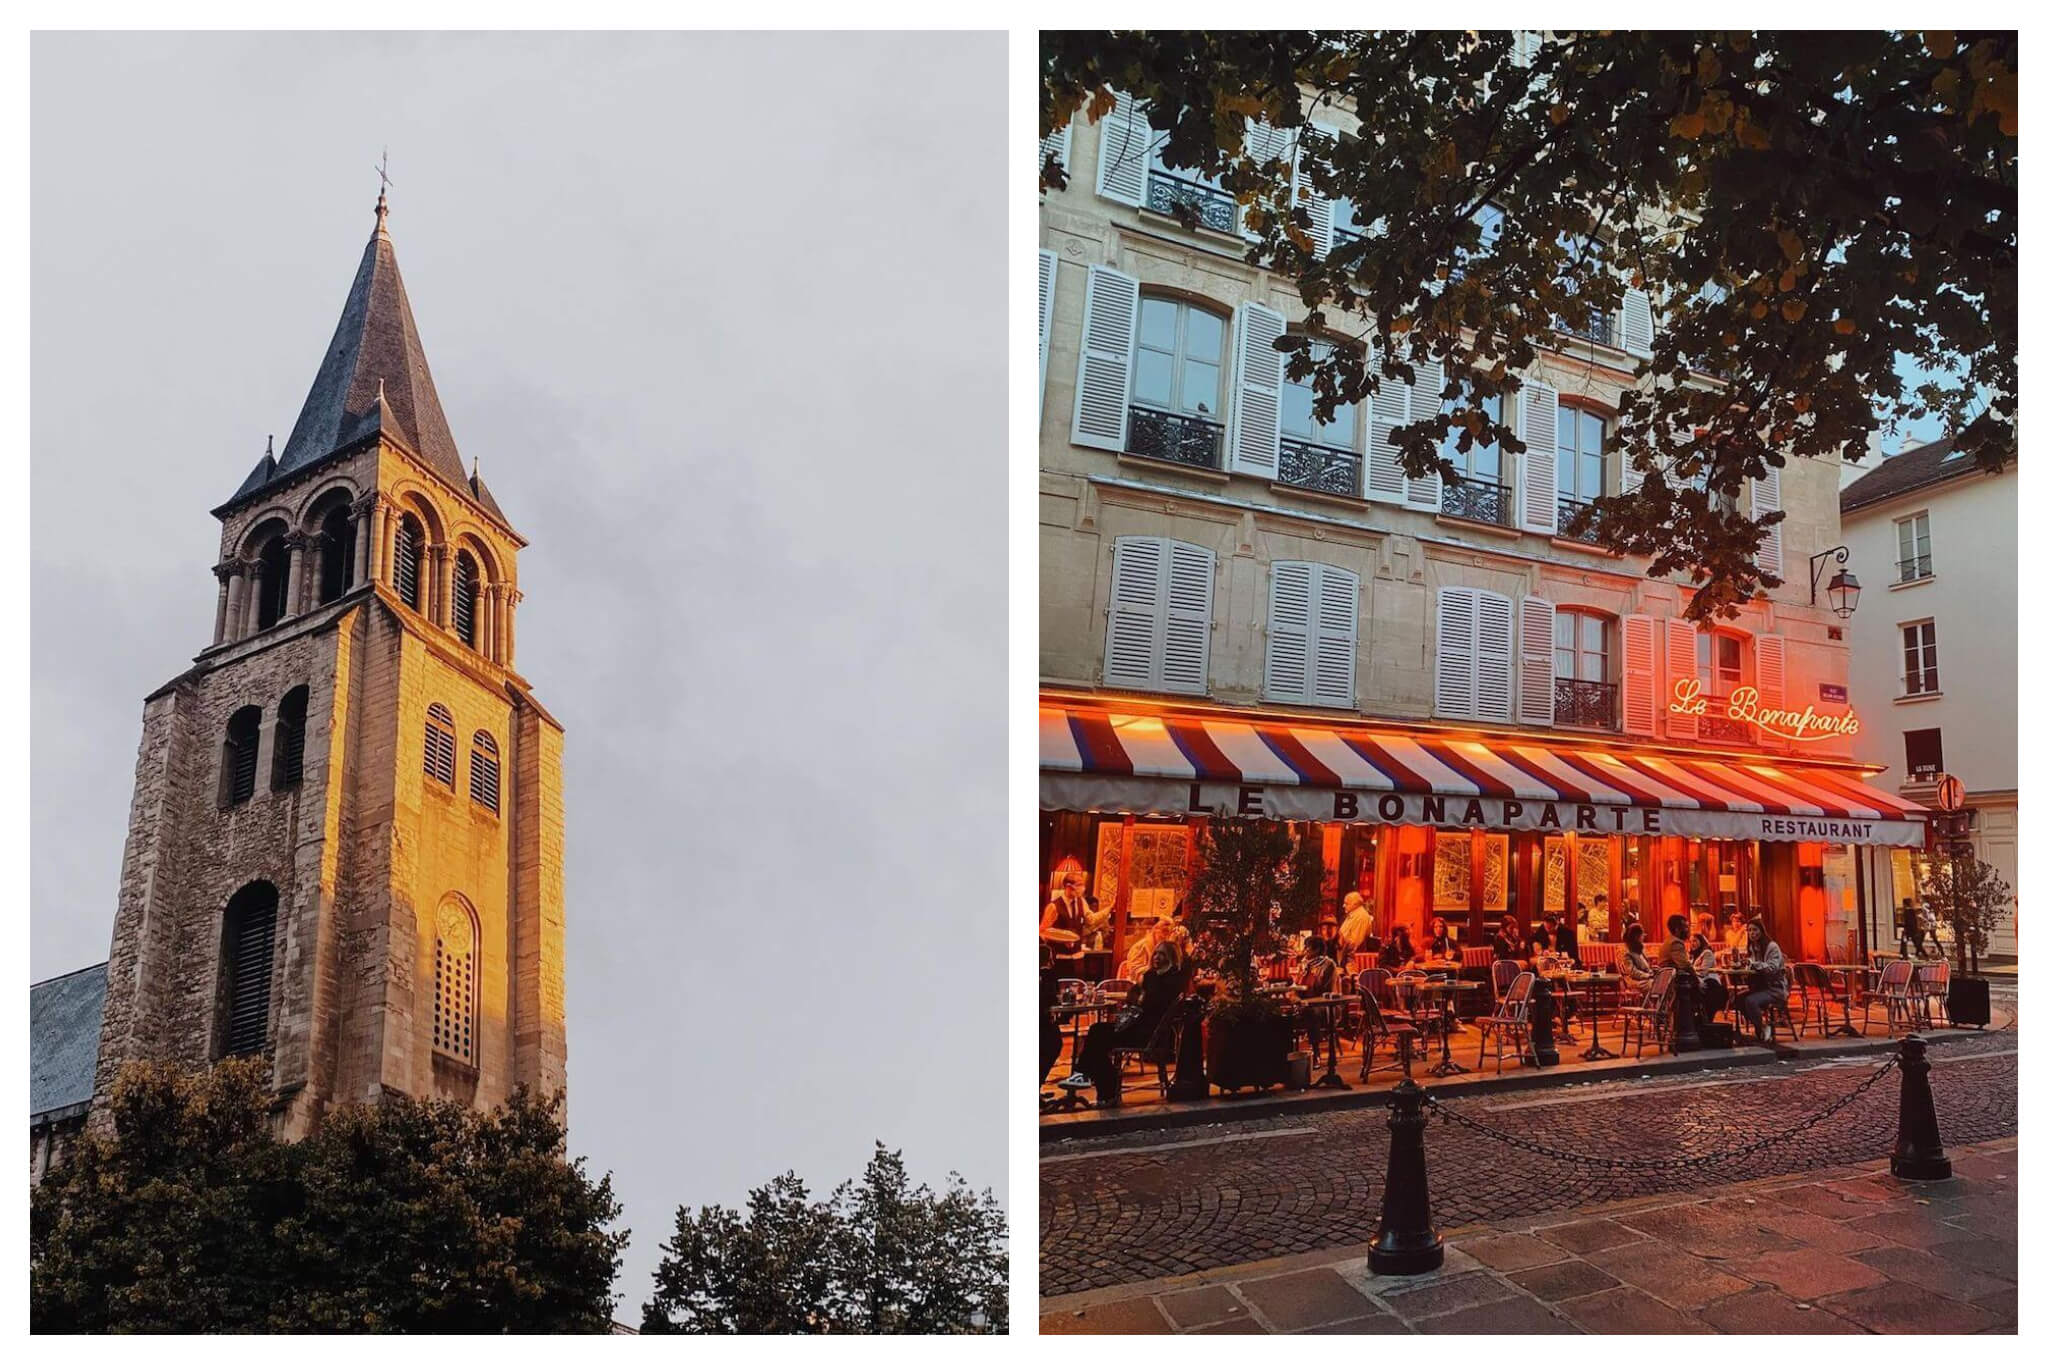 """Left: a church steeple with sun shining on it at dusk. There are trees visible near the base of the steeple. Right: Exterior of a Parisian cafe. The words """"Le Bonaparte"""" are lit up in red lights and the awning is white with blue and red stripes. There are several people sitting at tables in front of the cafe."""